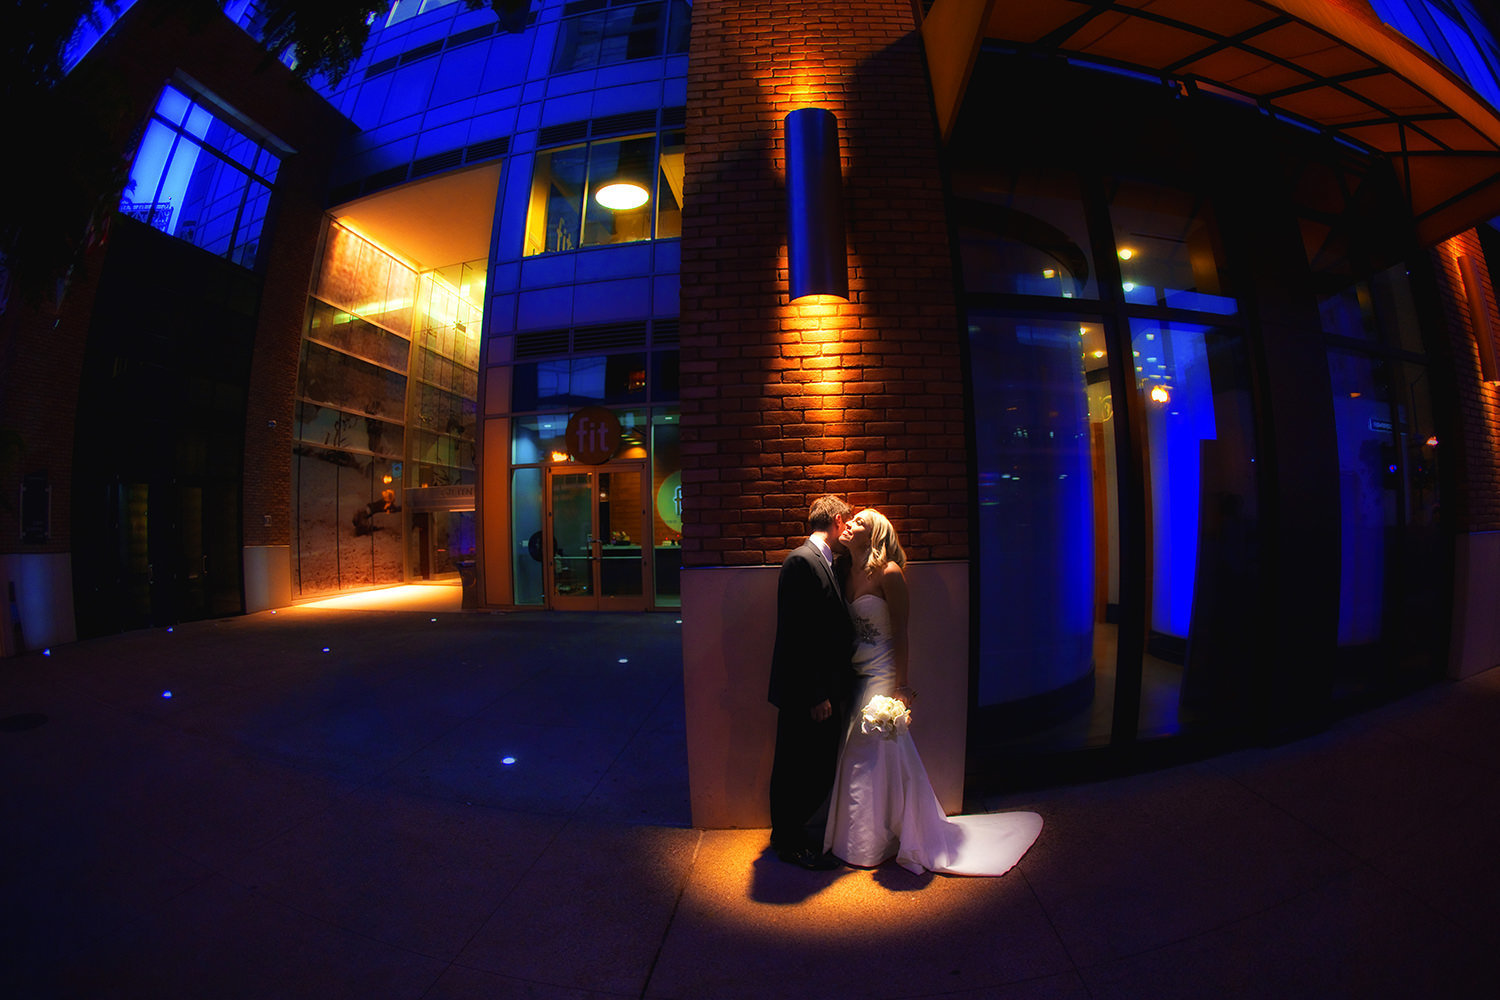 Awesome night time portrait of wedding couple downtown